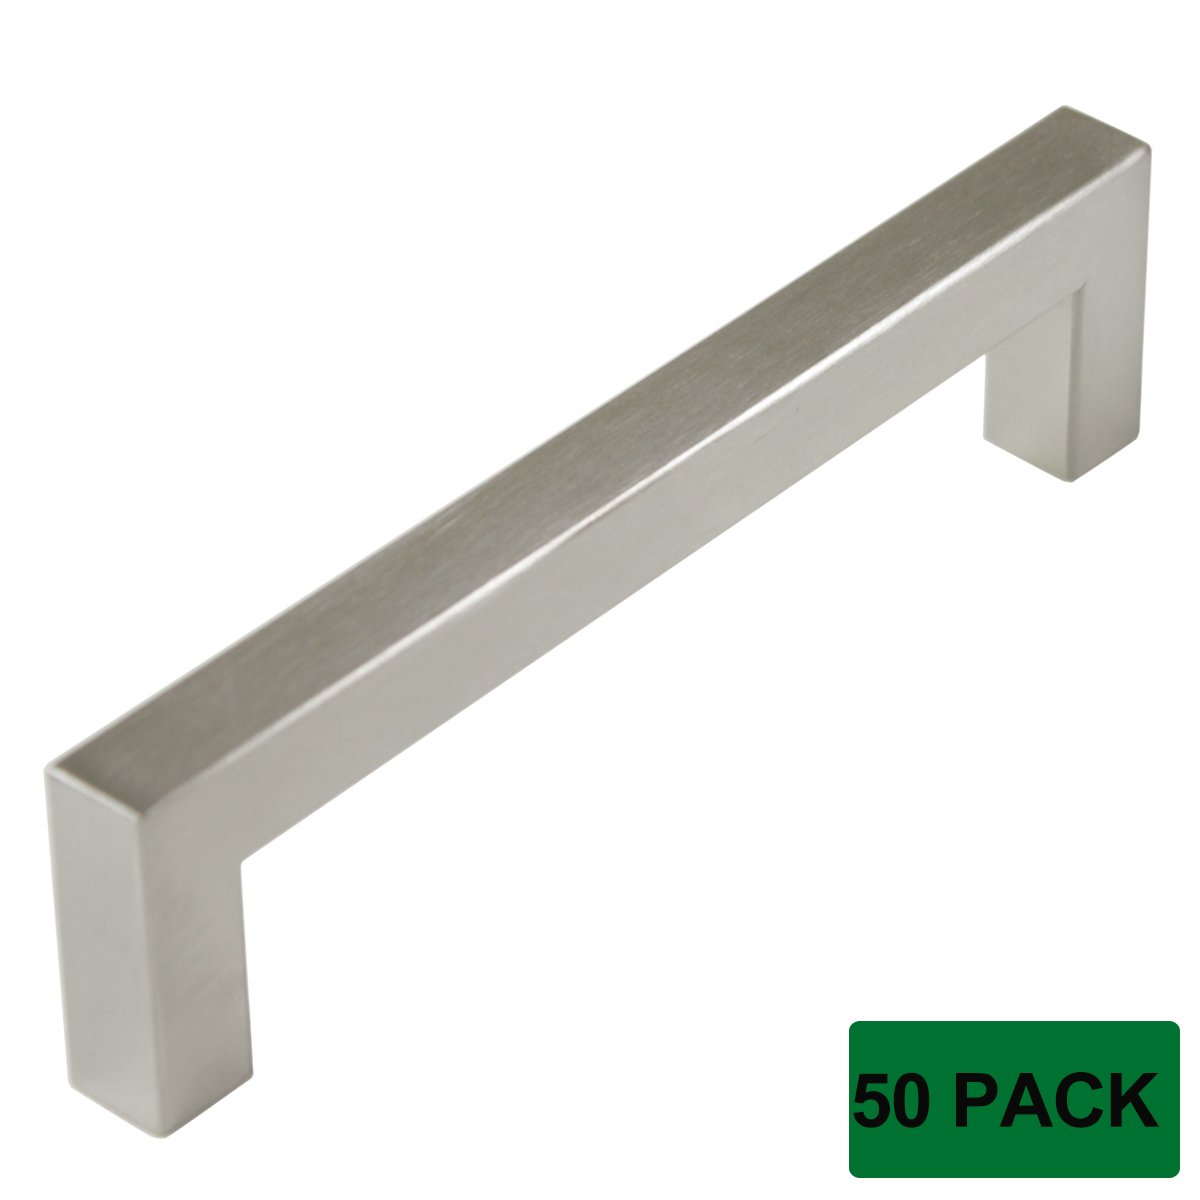 Probrico Cabinet Drawer Handles Stainless Steel Square Kitchen Cupboard Furniture Handles And Pulls Screw Spacing 5'' Total Length Brushed Nickel 5-1/2'' Pack of 50